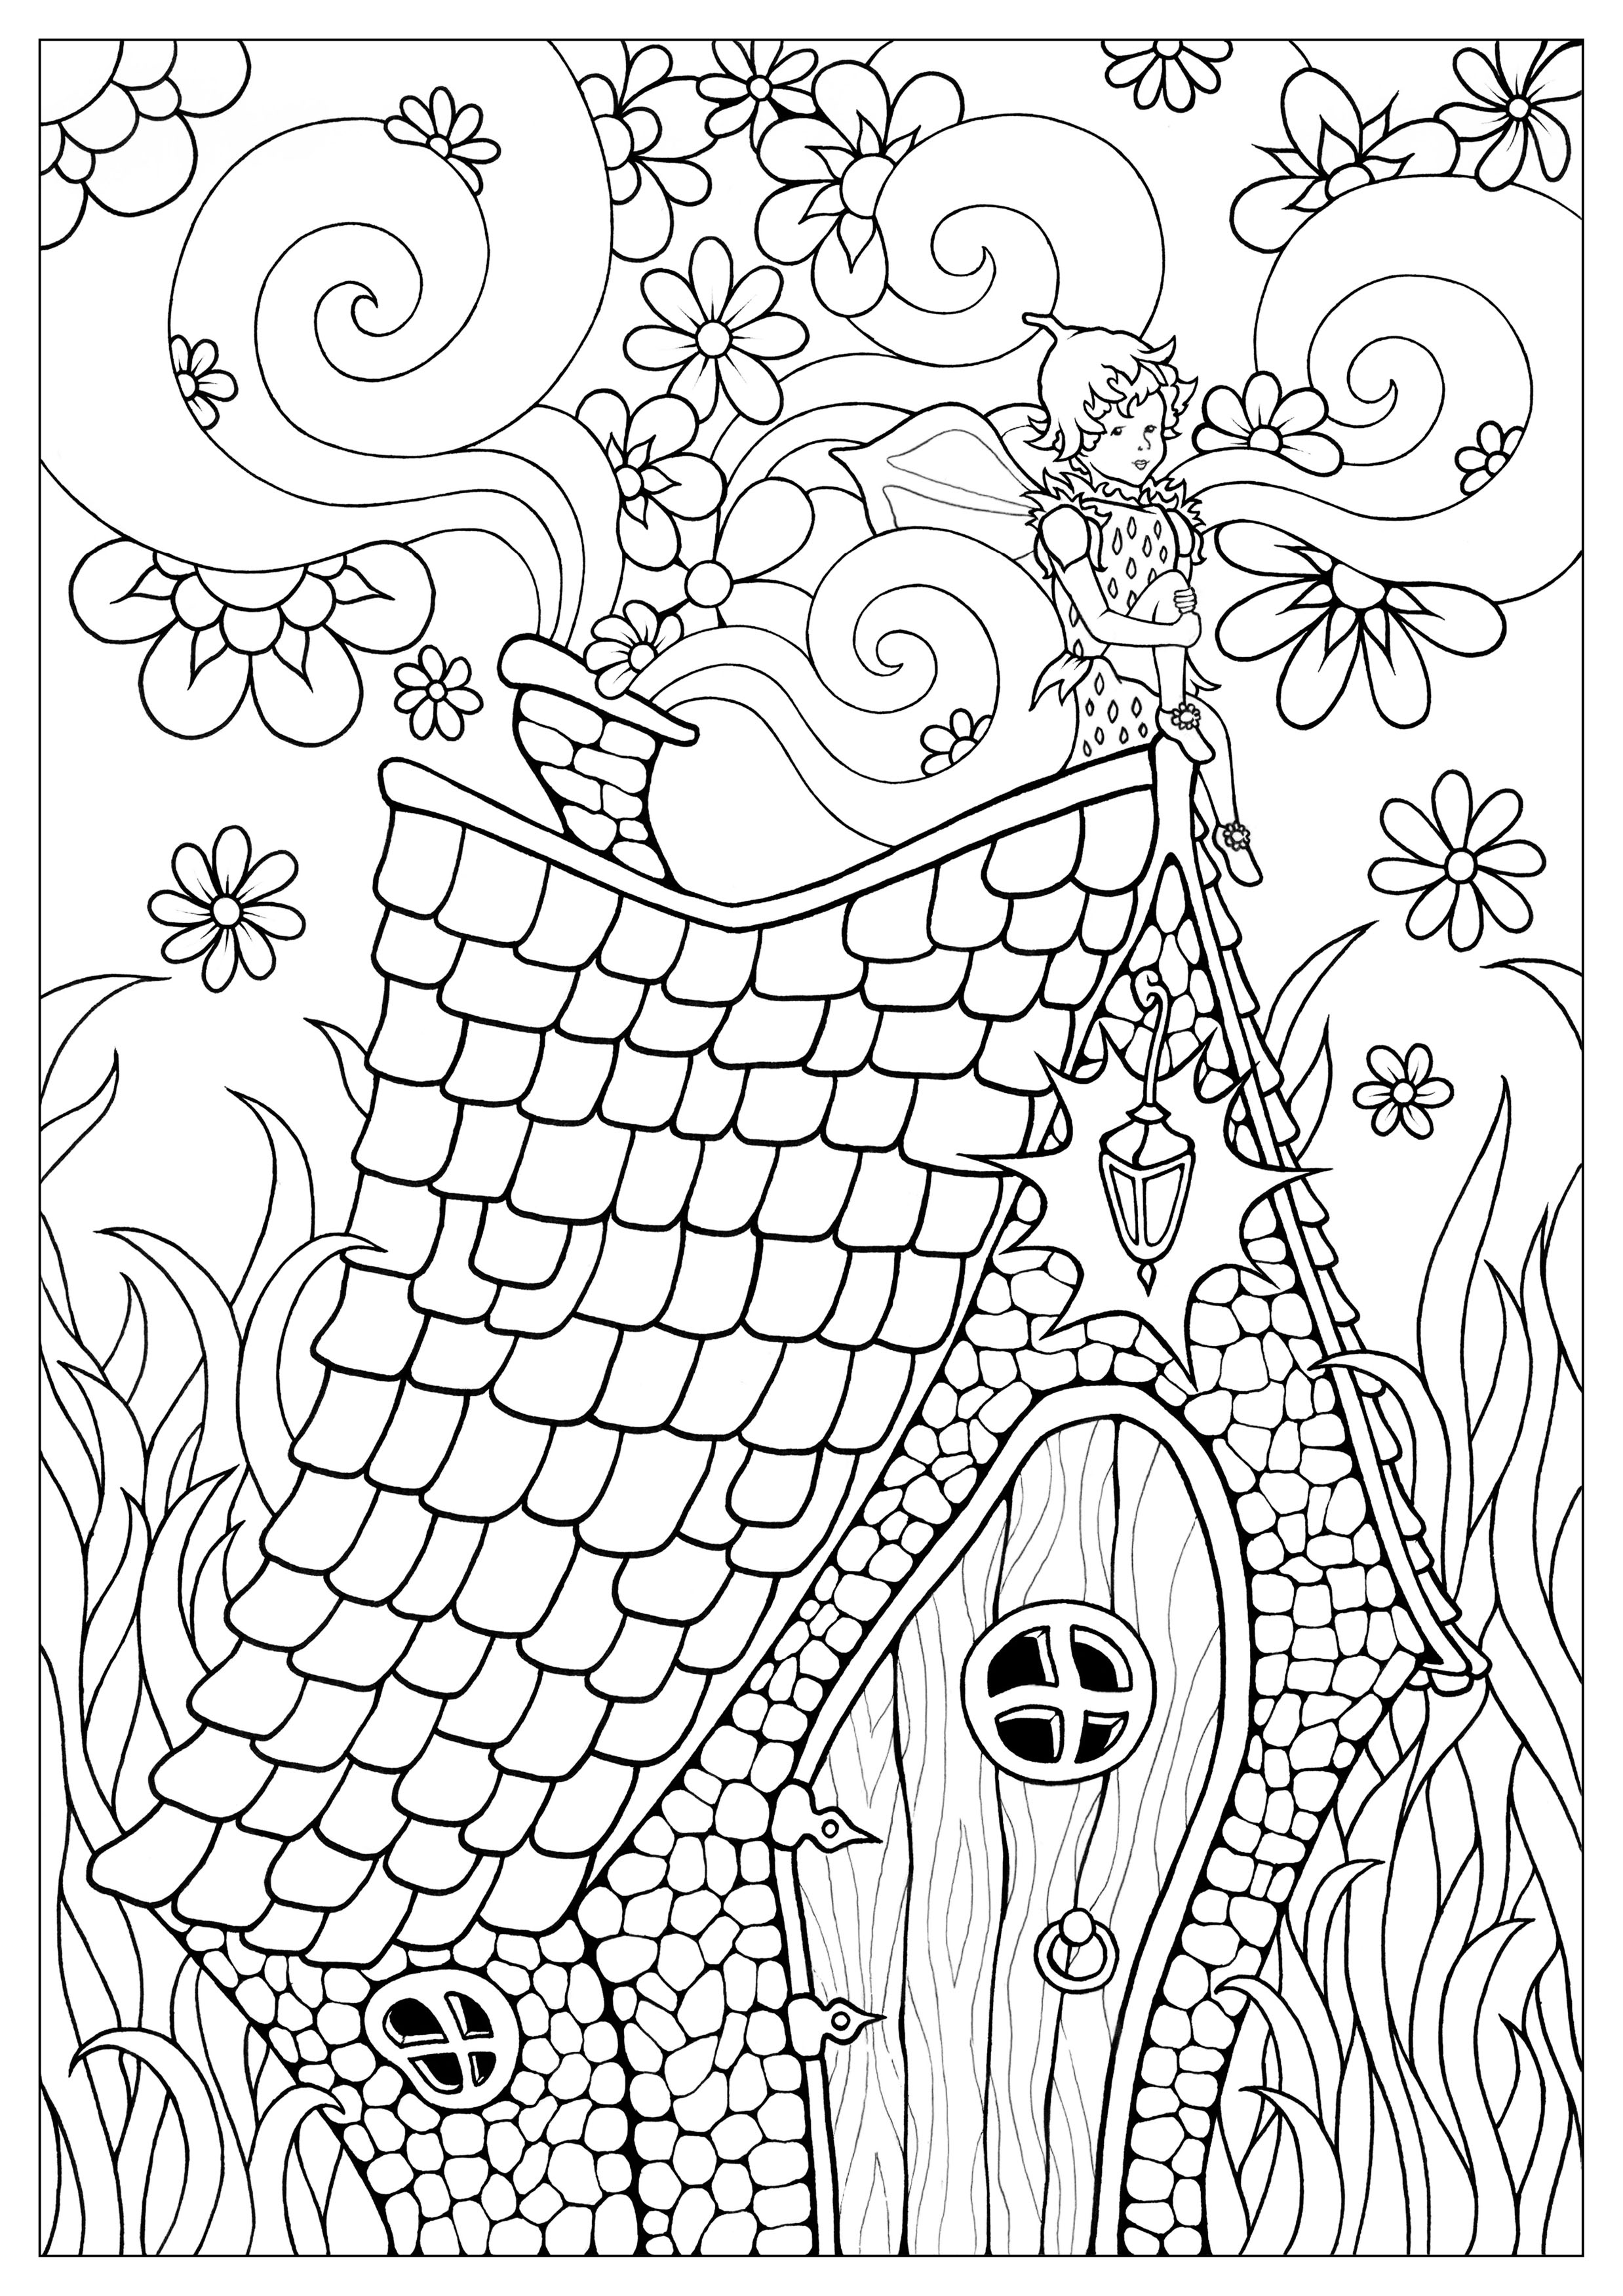 fairies coloring pages fairy free to color for children fairy kids coloring pages fairies pages coloring